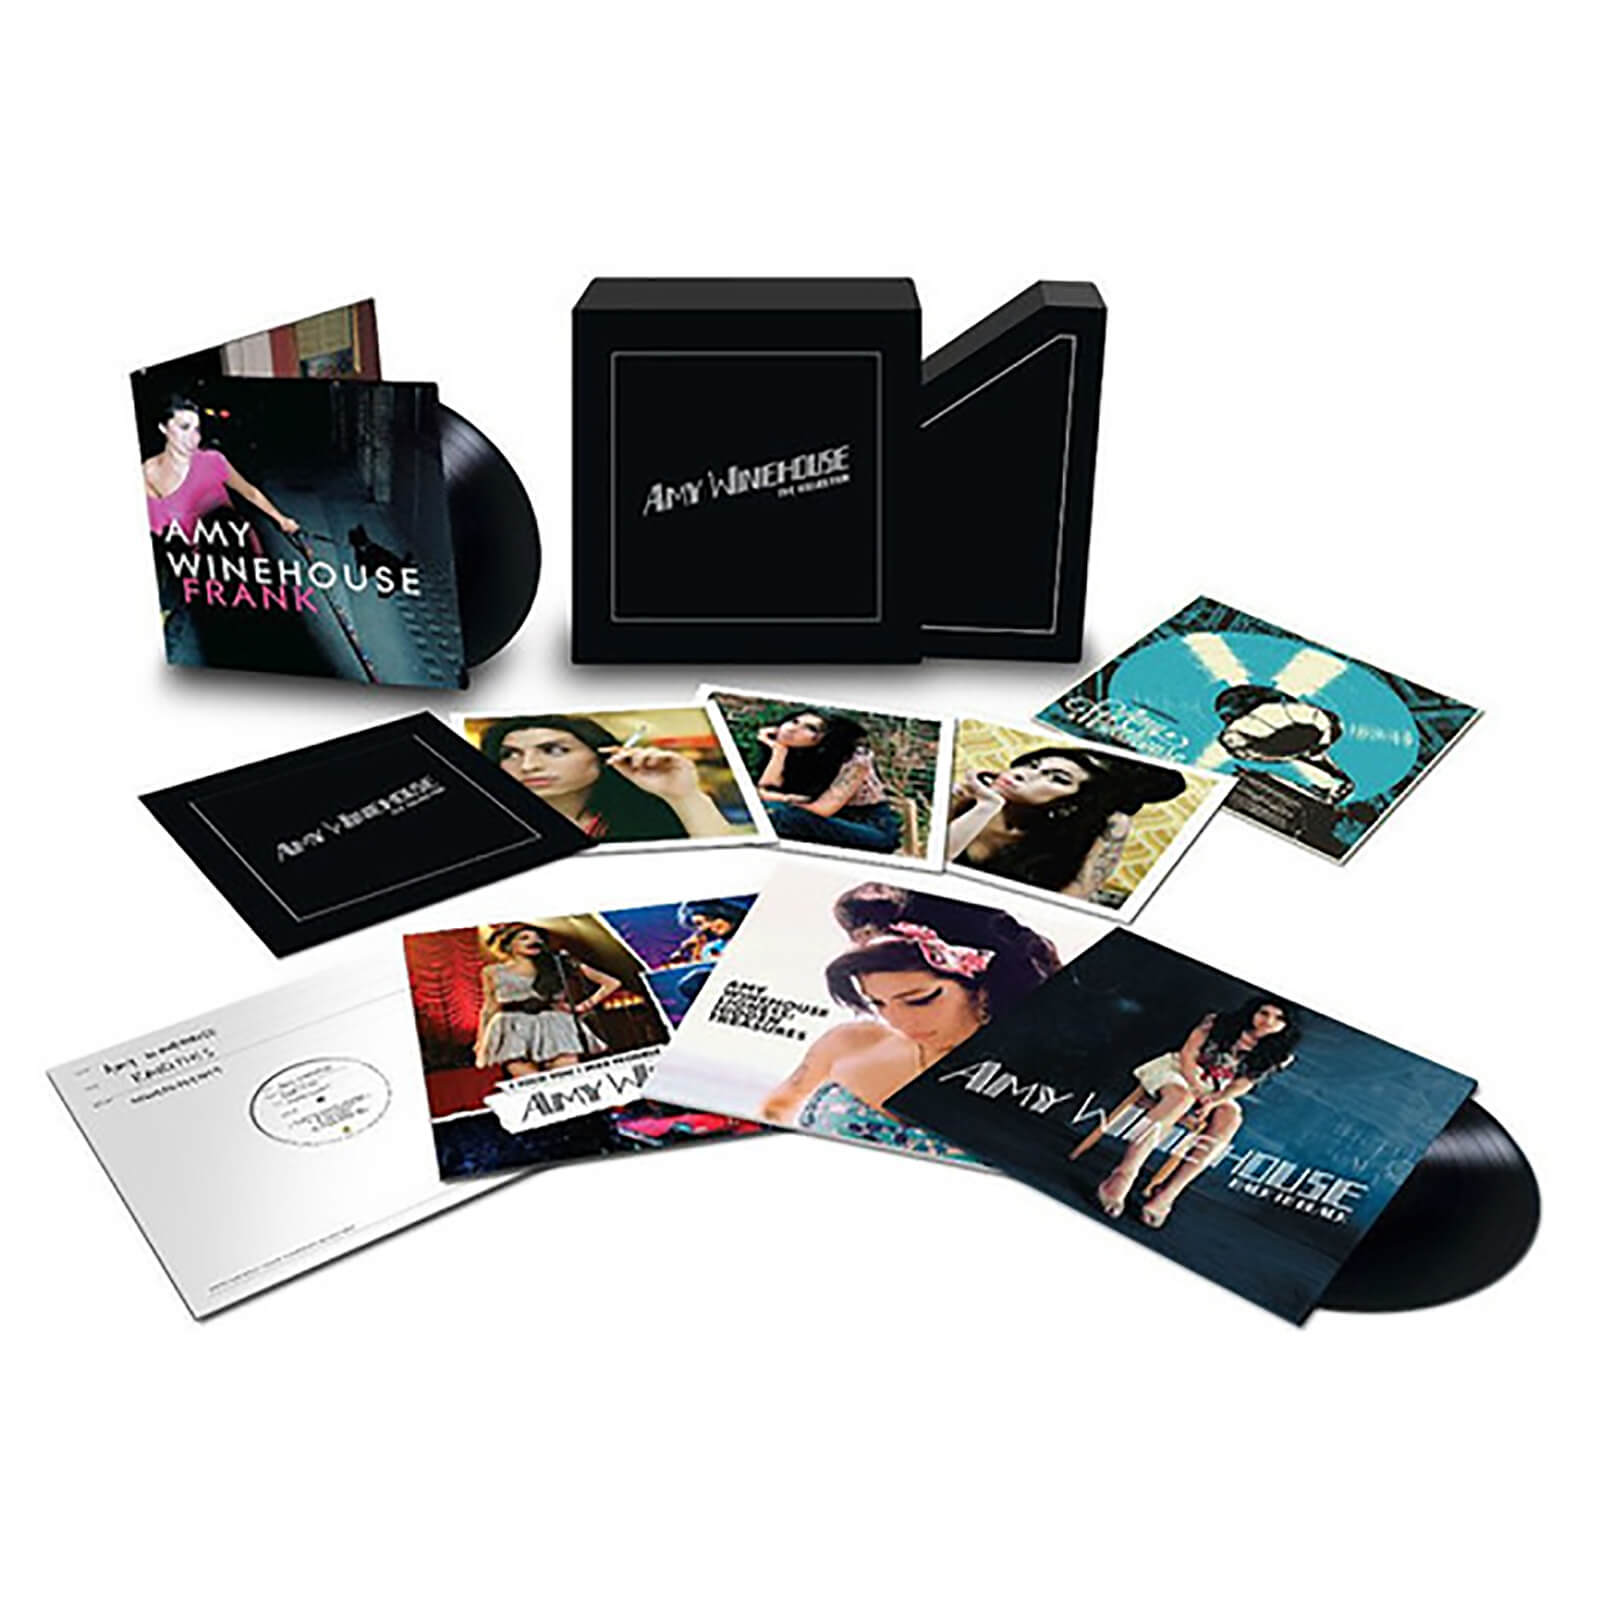 Amy Winehouse - Collection - Vinyl